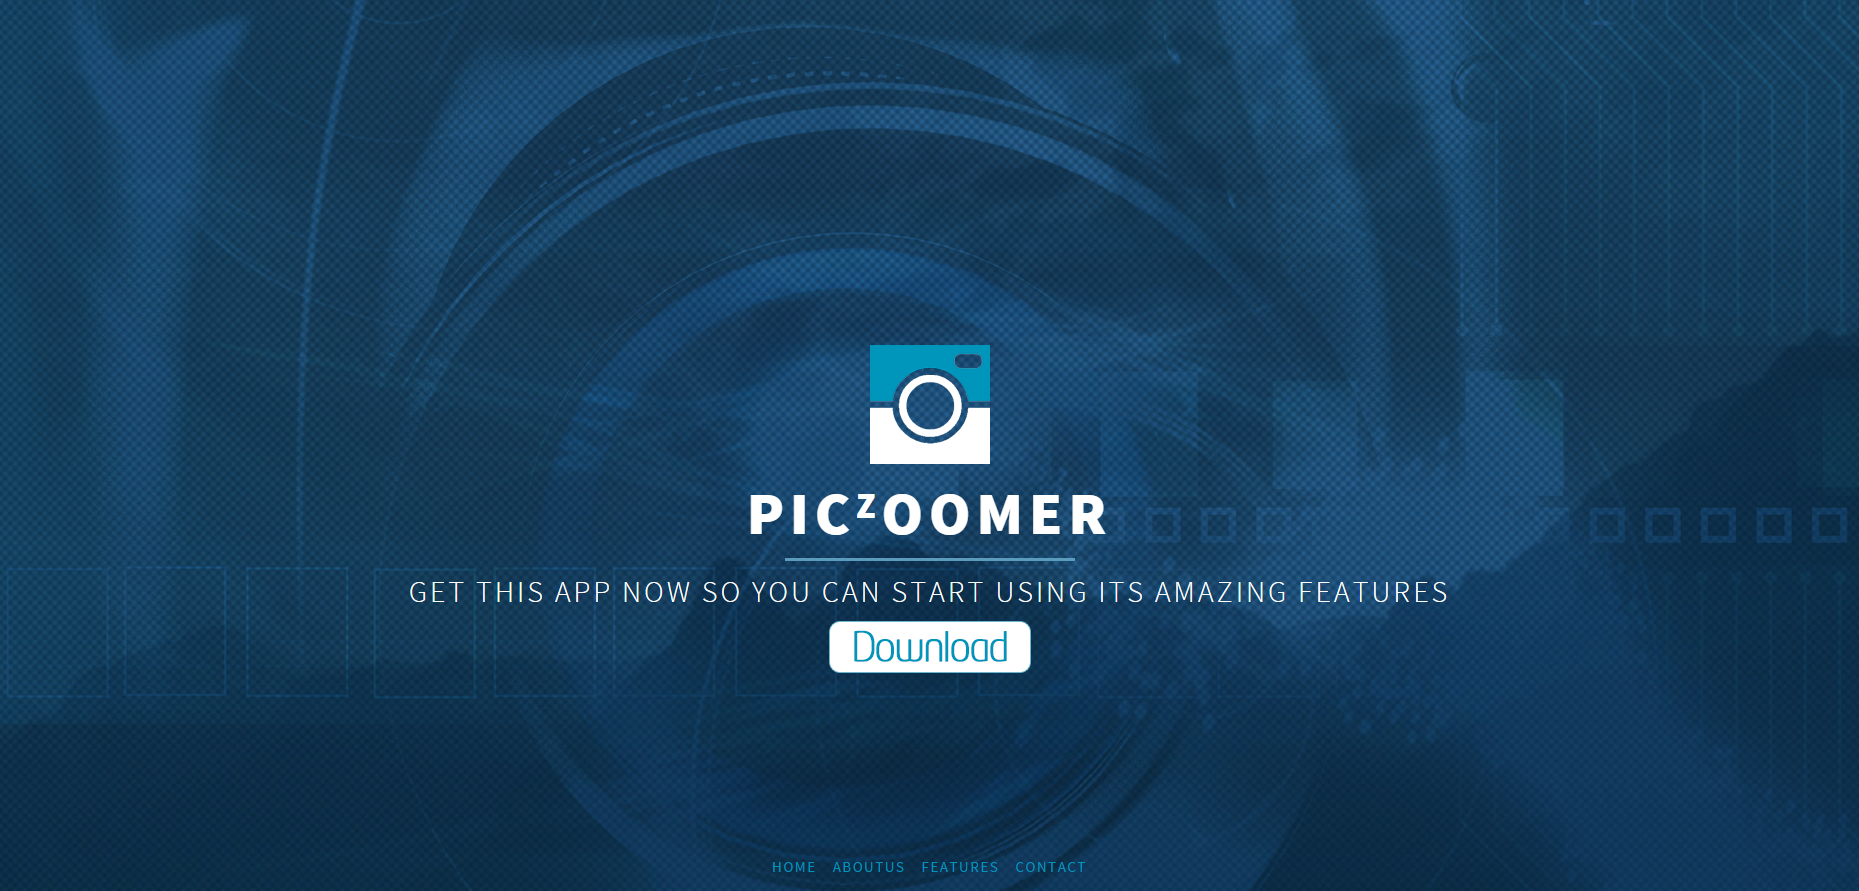 PicZoomer ads